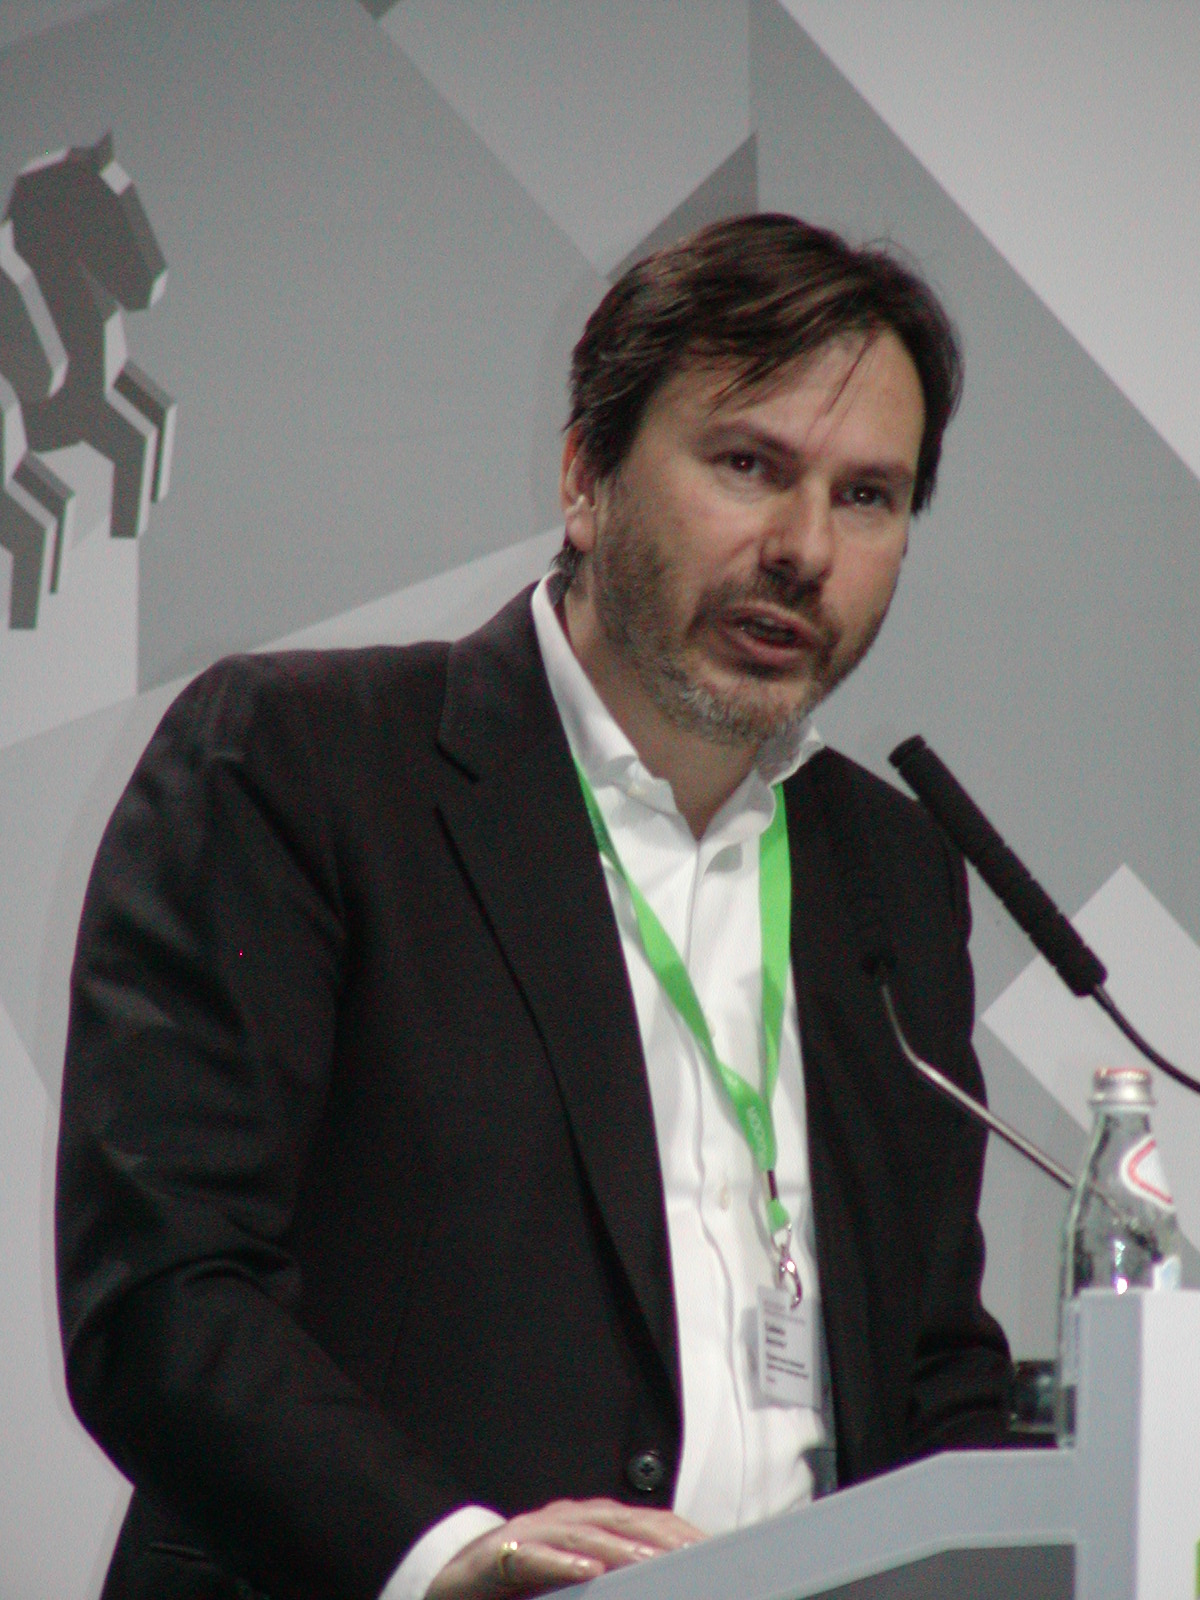 Diplomacy >> Simon Anholt - Wikipedia